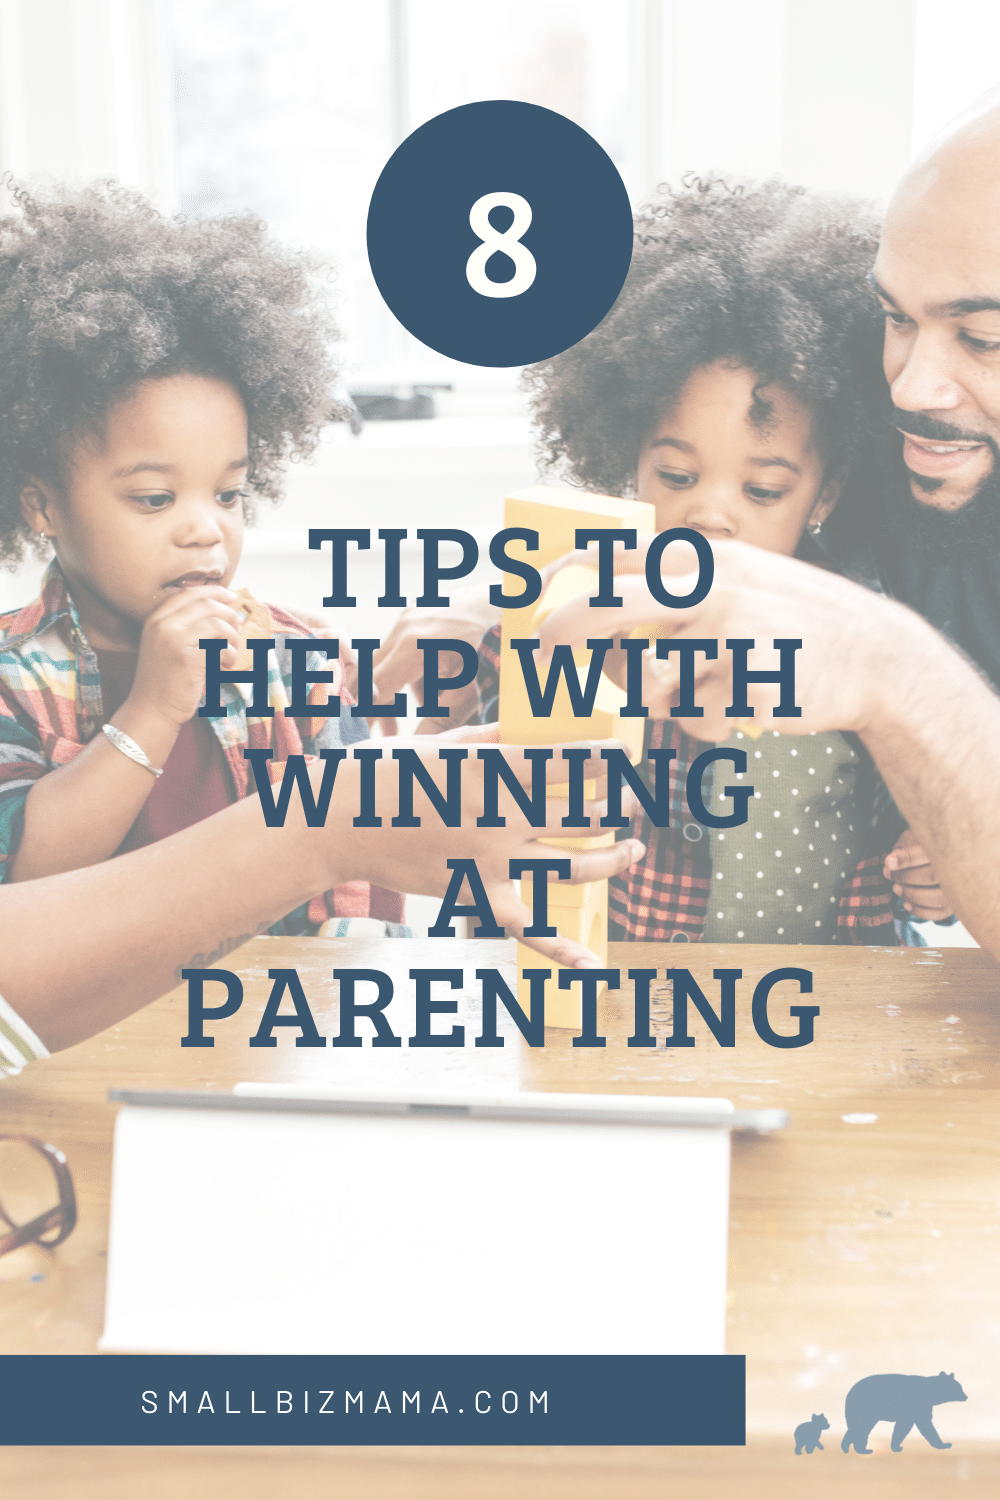 8 tips to help with winning at parenting